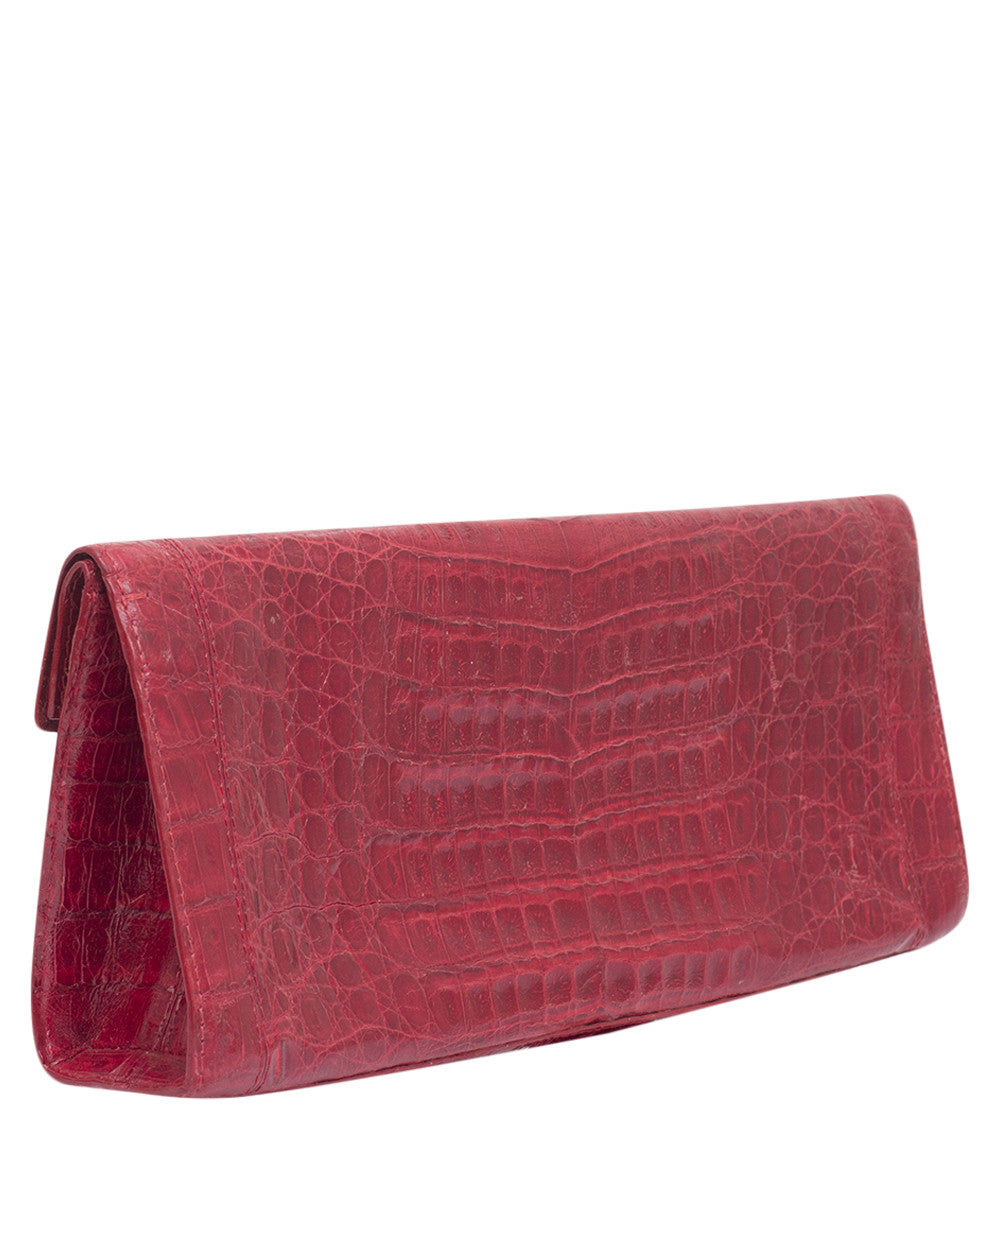 Red Crocodile Skin Clutch Bag